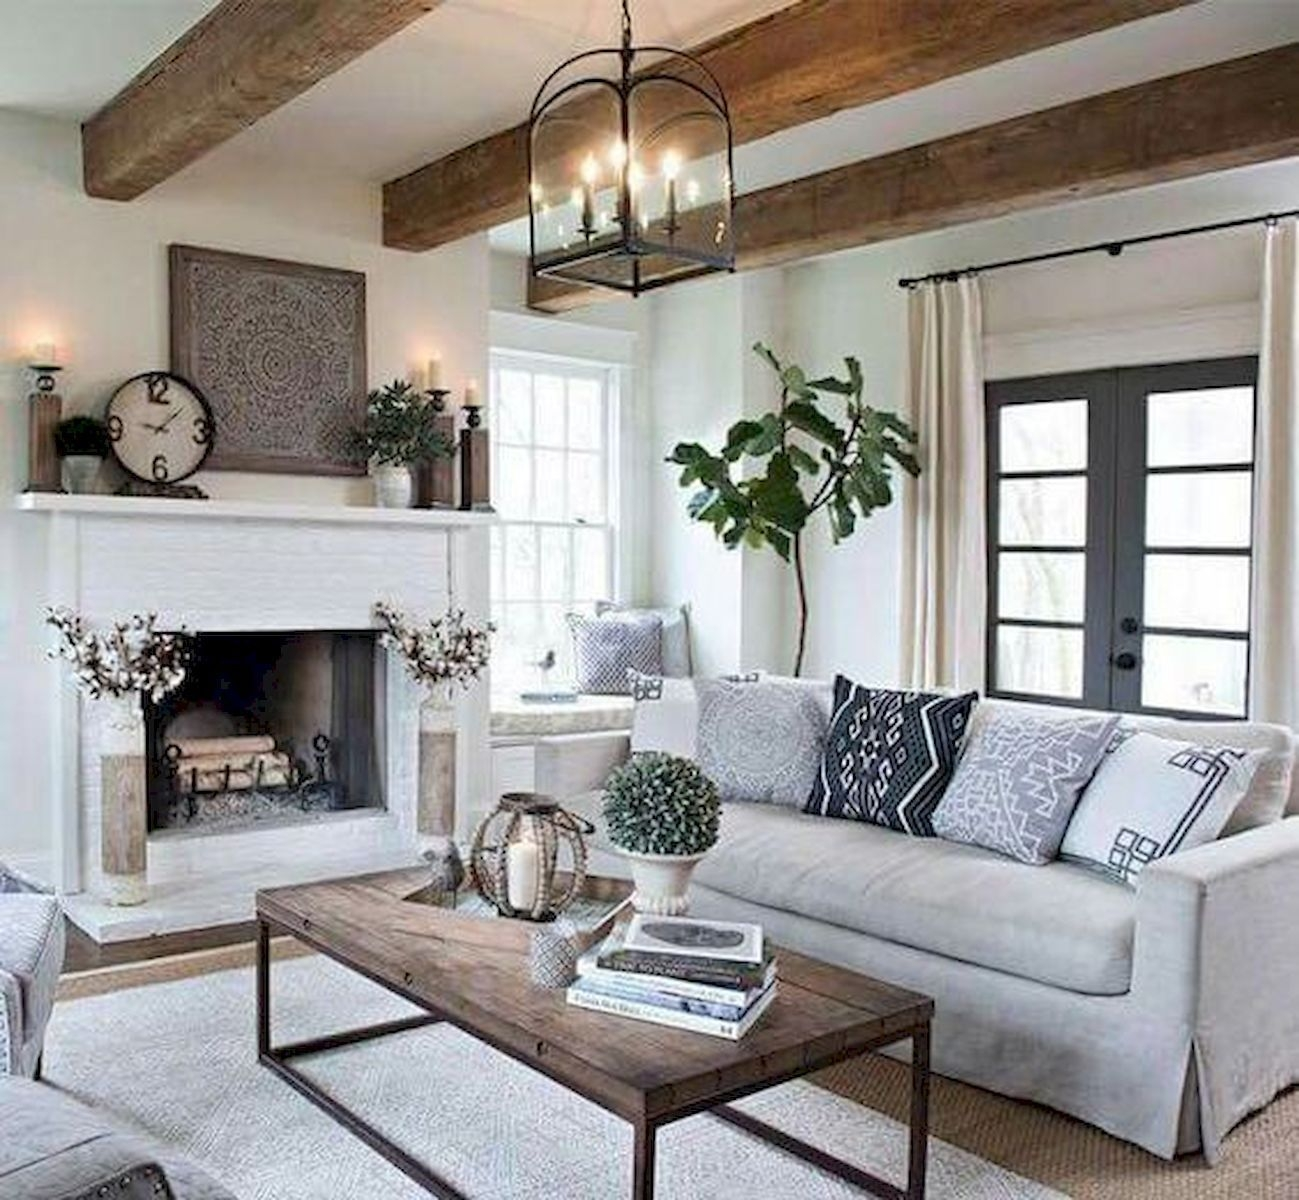 Comfy Rustic Living Room Decor Ideas 27